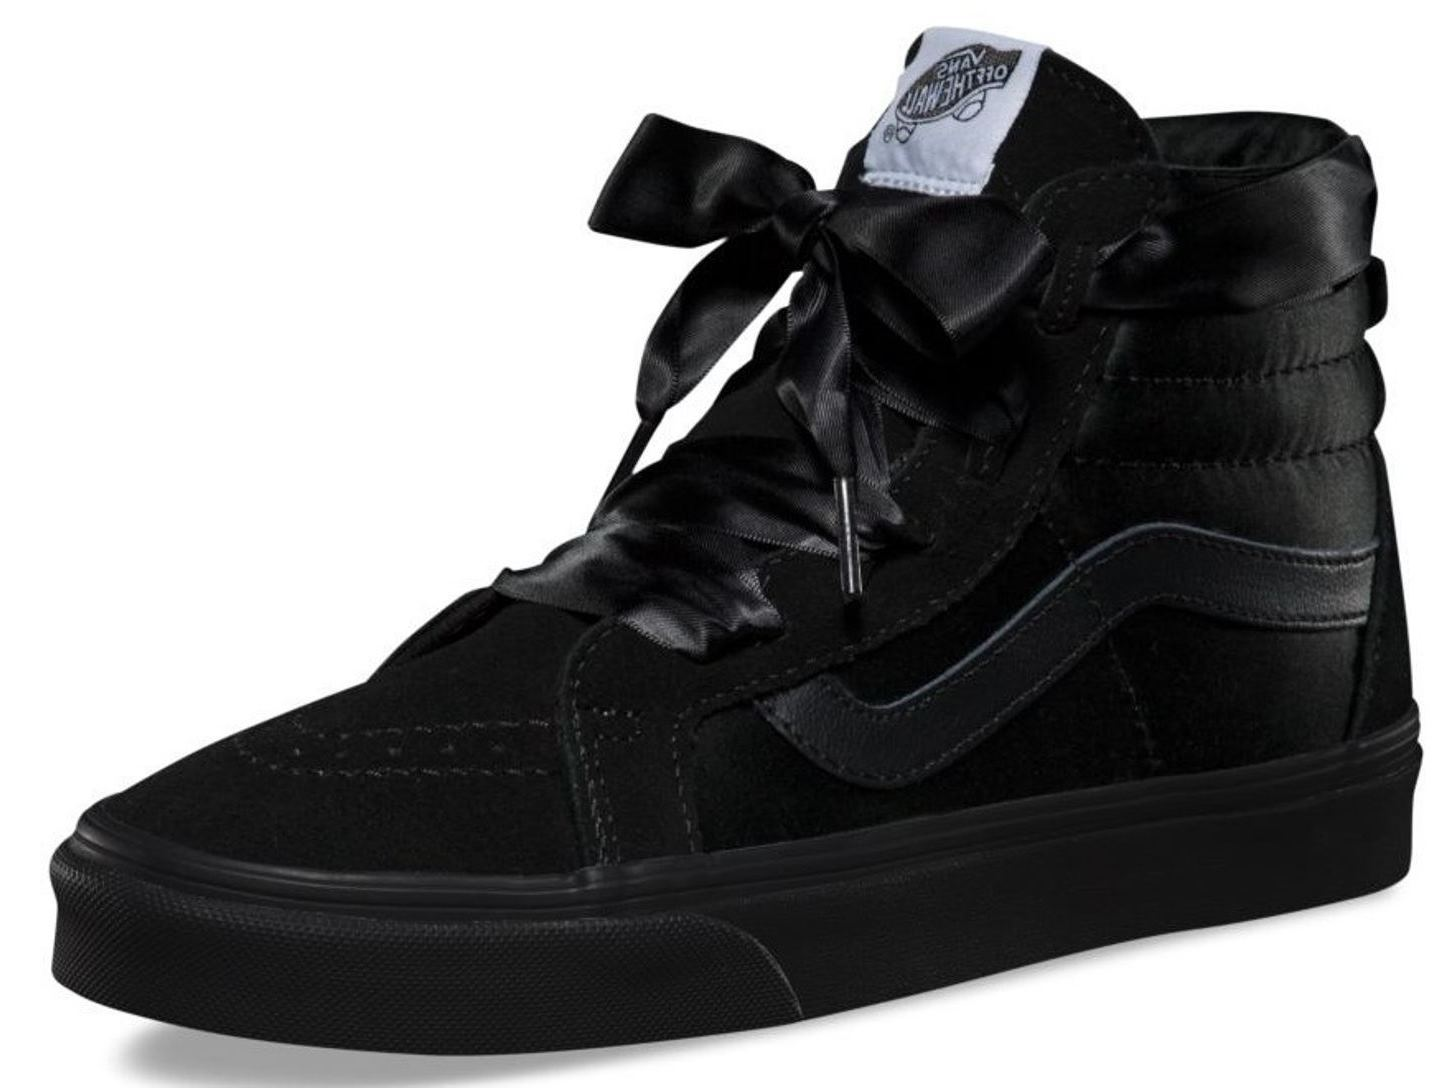 Vans SK8 Hi Ballerina Alt Lace Black Womens Suede Trainers Quick View 09359e47c